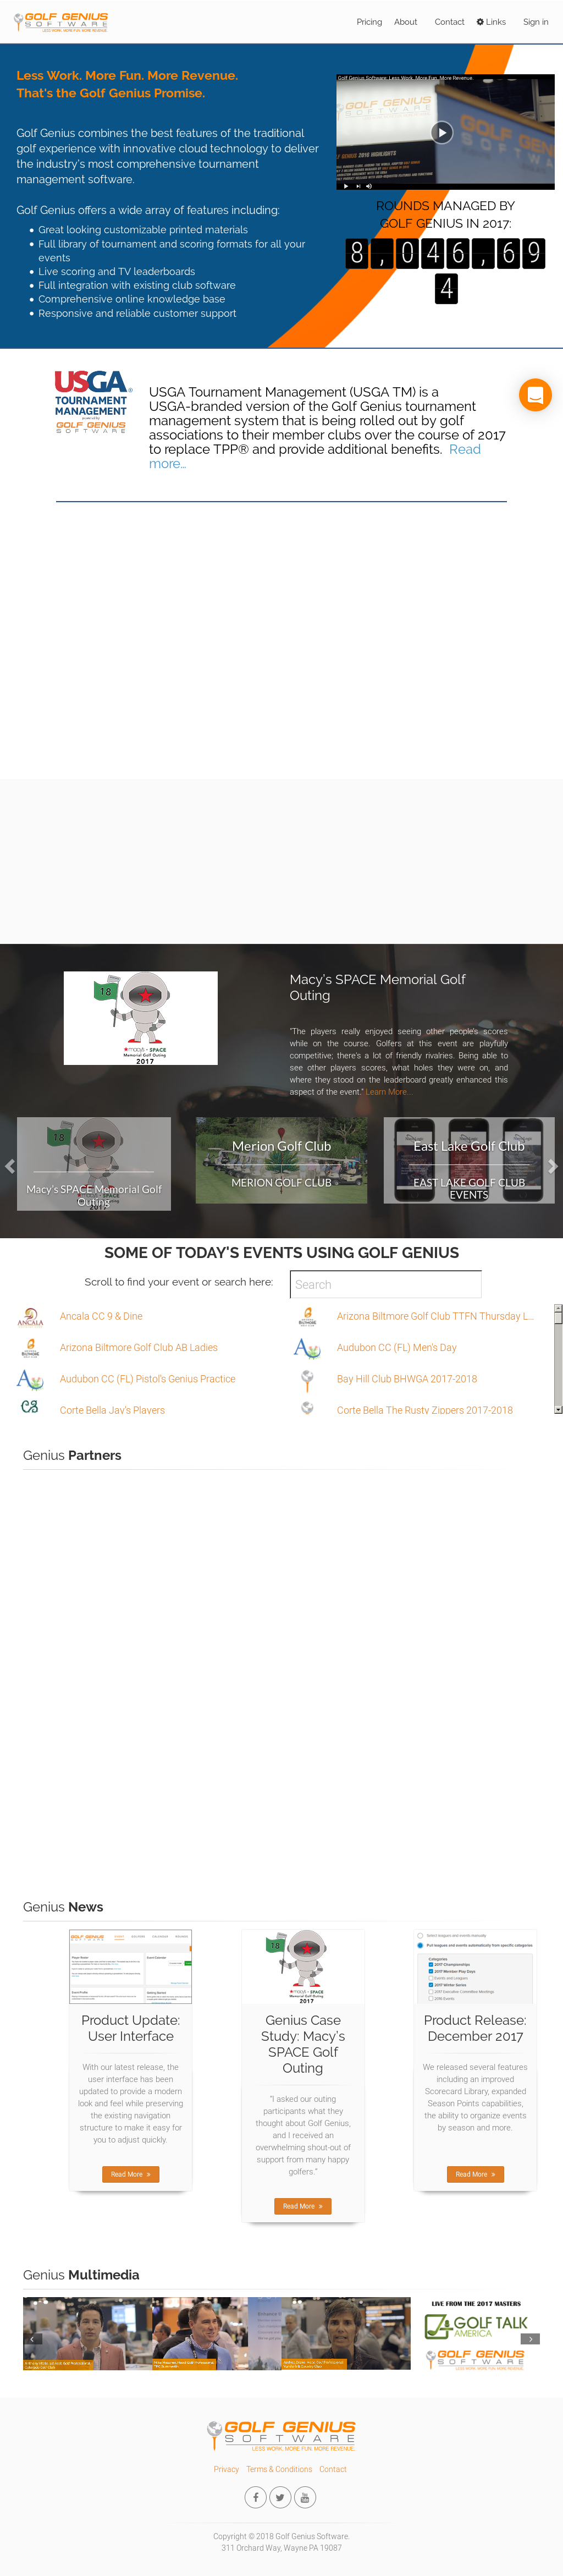 Golf Genius Software Competitors, Revenue and Employees - Owler